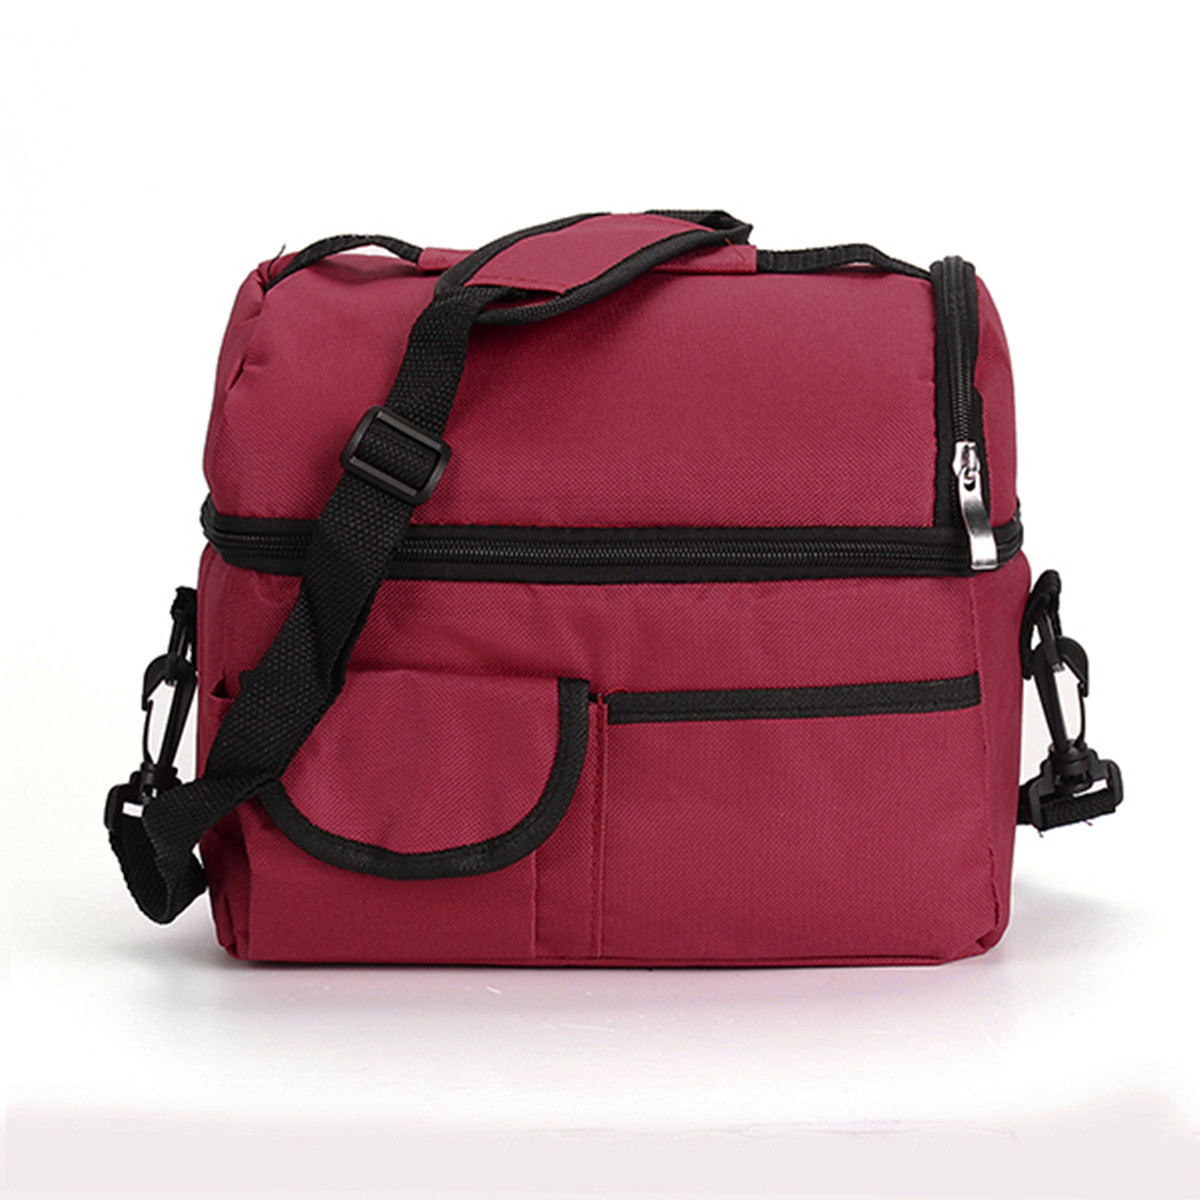 Portable-Bento-Lunch-Box-Bag-Insulated-Thermal-Waterproof-Picnic-Carry-Tote thumbnail 11